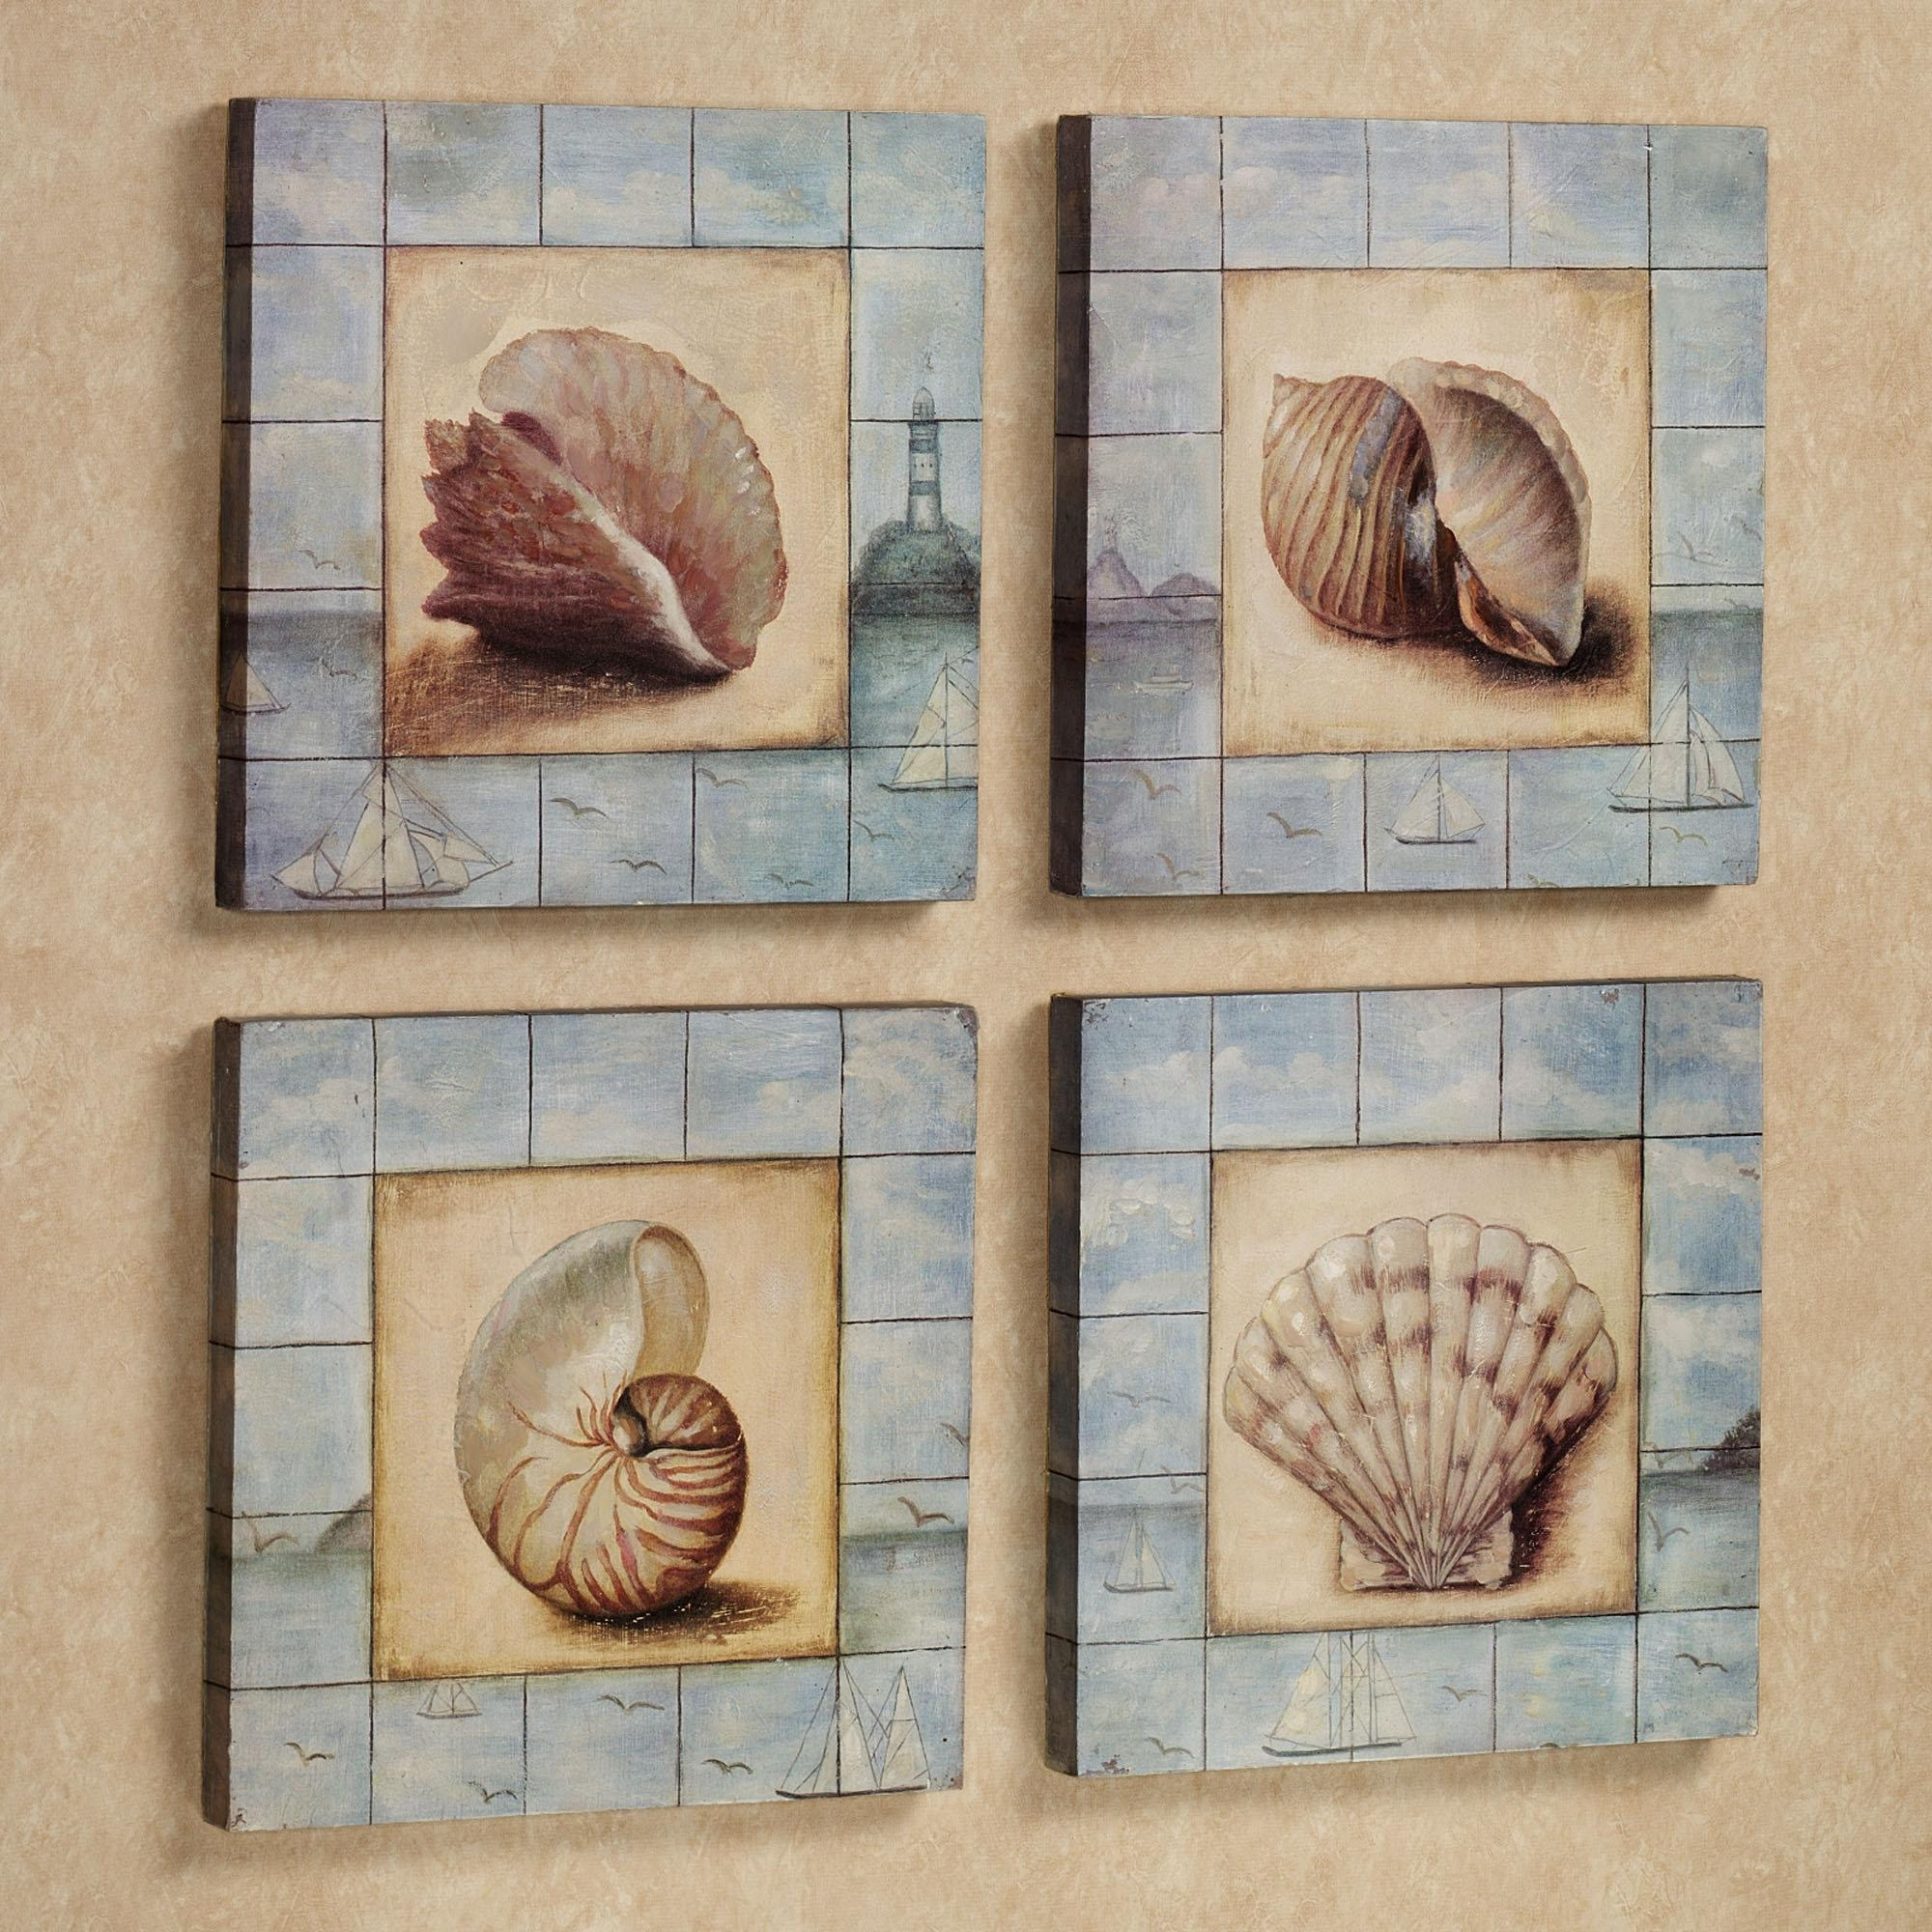 Ceramic Seashell Wall Decor : Make Nautical Wall With Seashell Regarding Seashell Prints Wall Art (View 2 of 20)